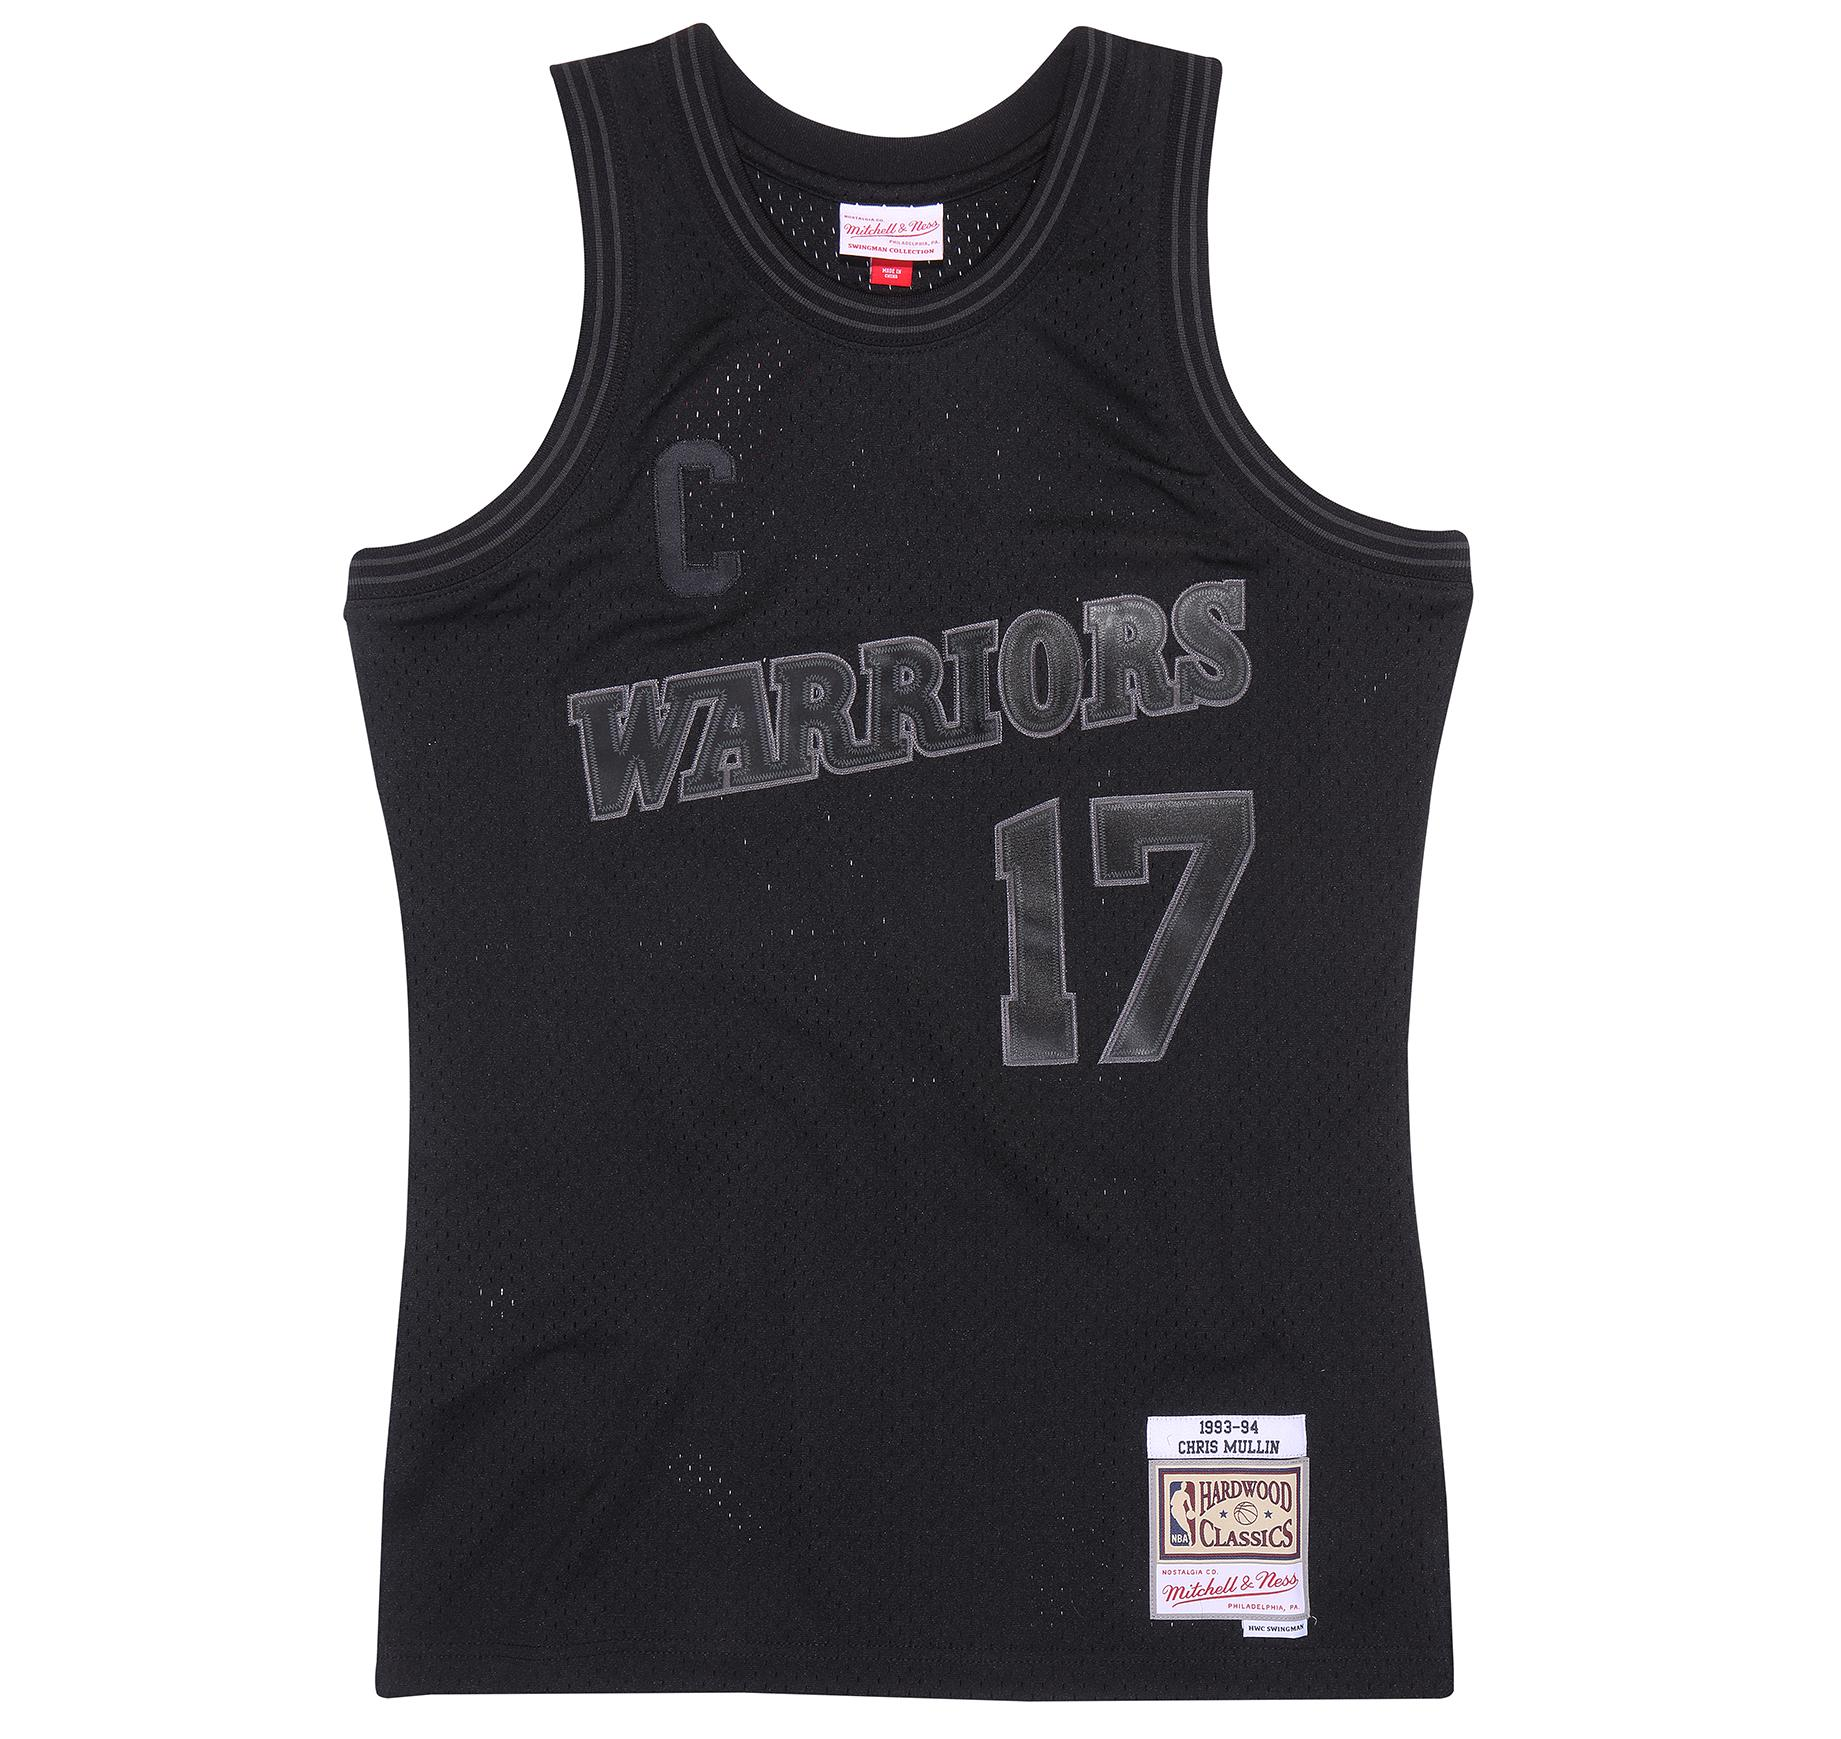 detailed pictures f46ec 98b96 ... to Black Chris Mullin Swingman Jersey Our Price  £54.00 ...